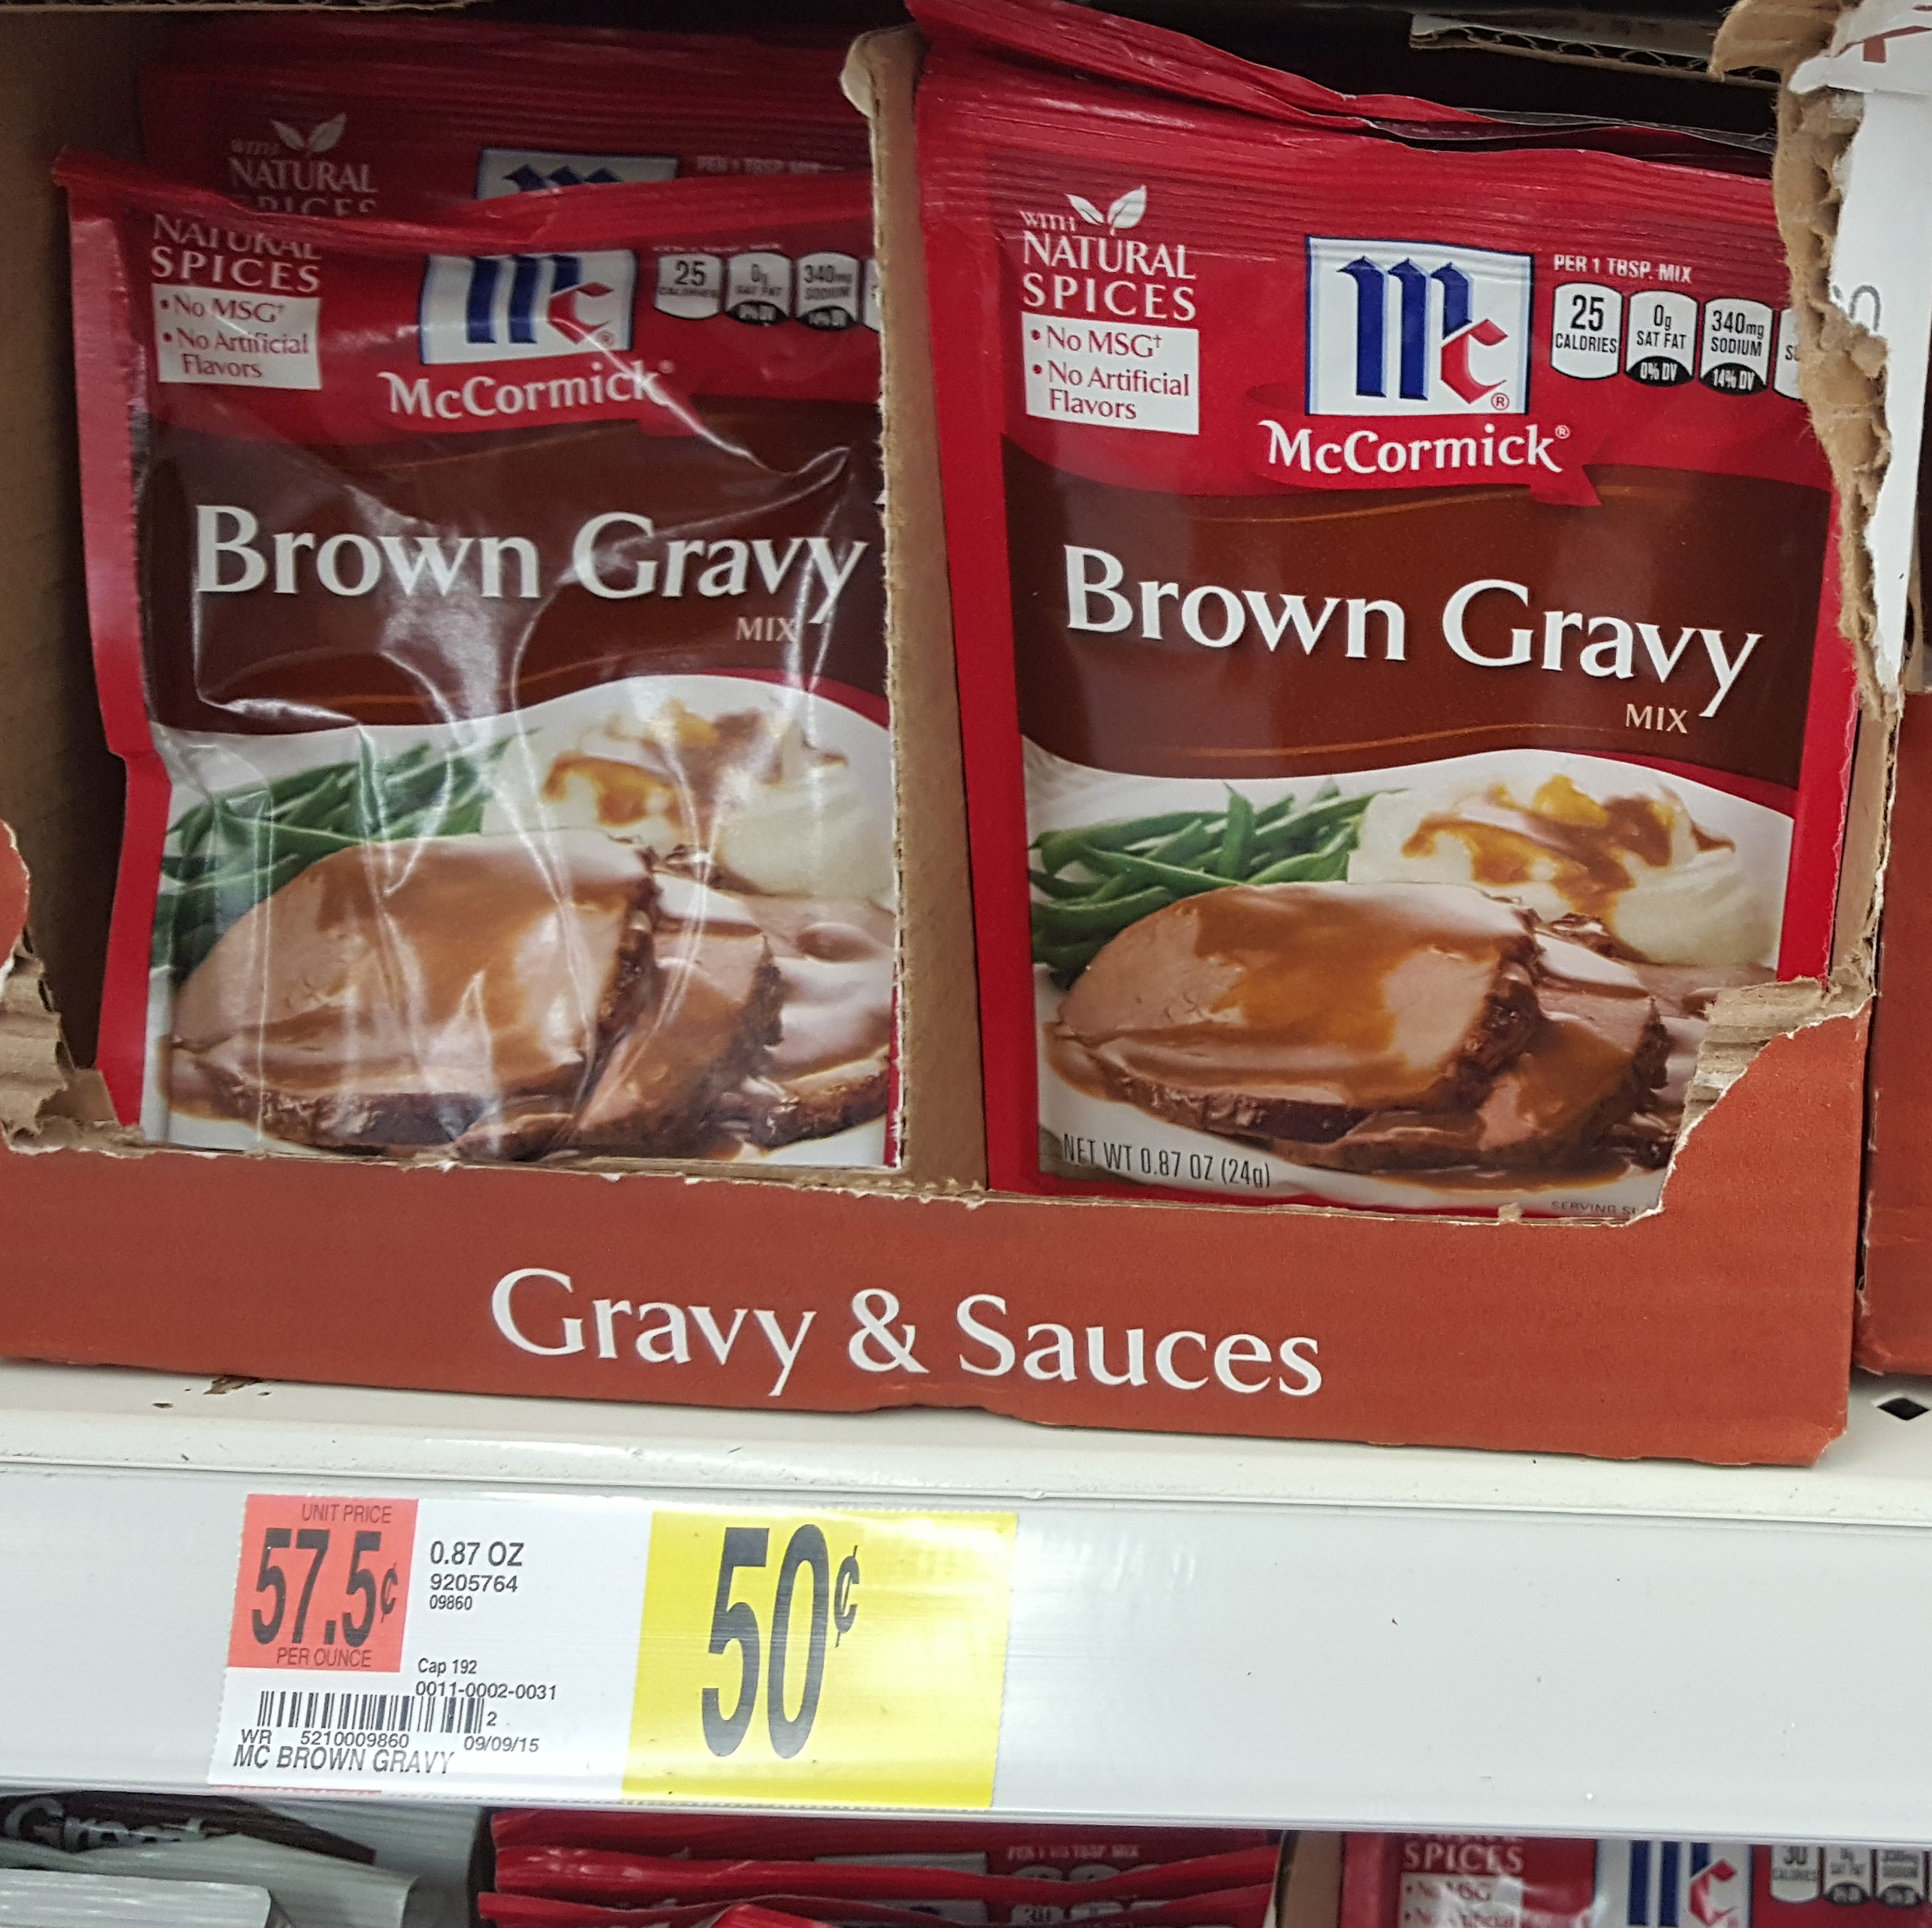 McCormick Brown Gravy Mix Just $.25 at Walmart!